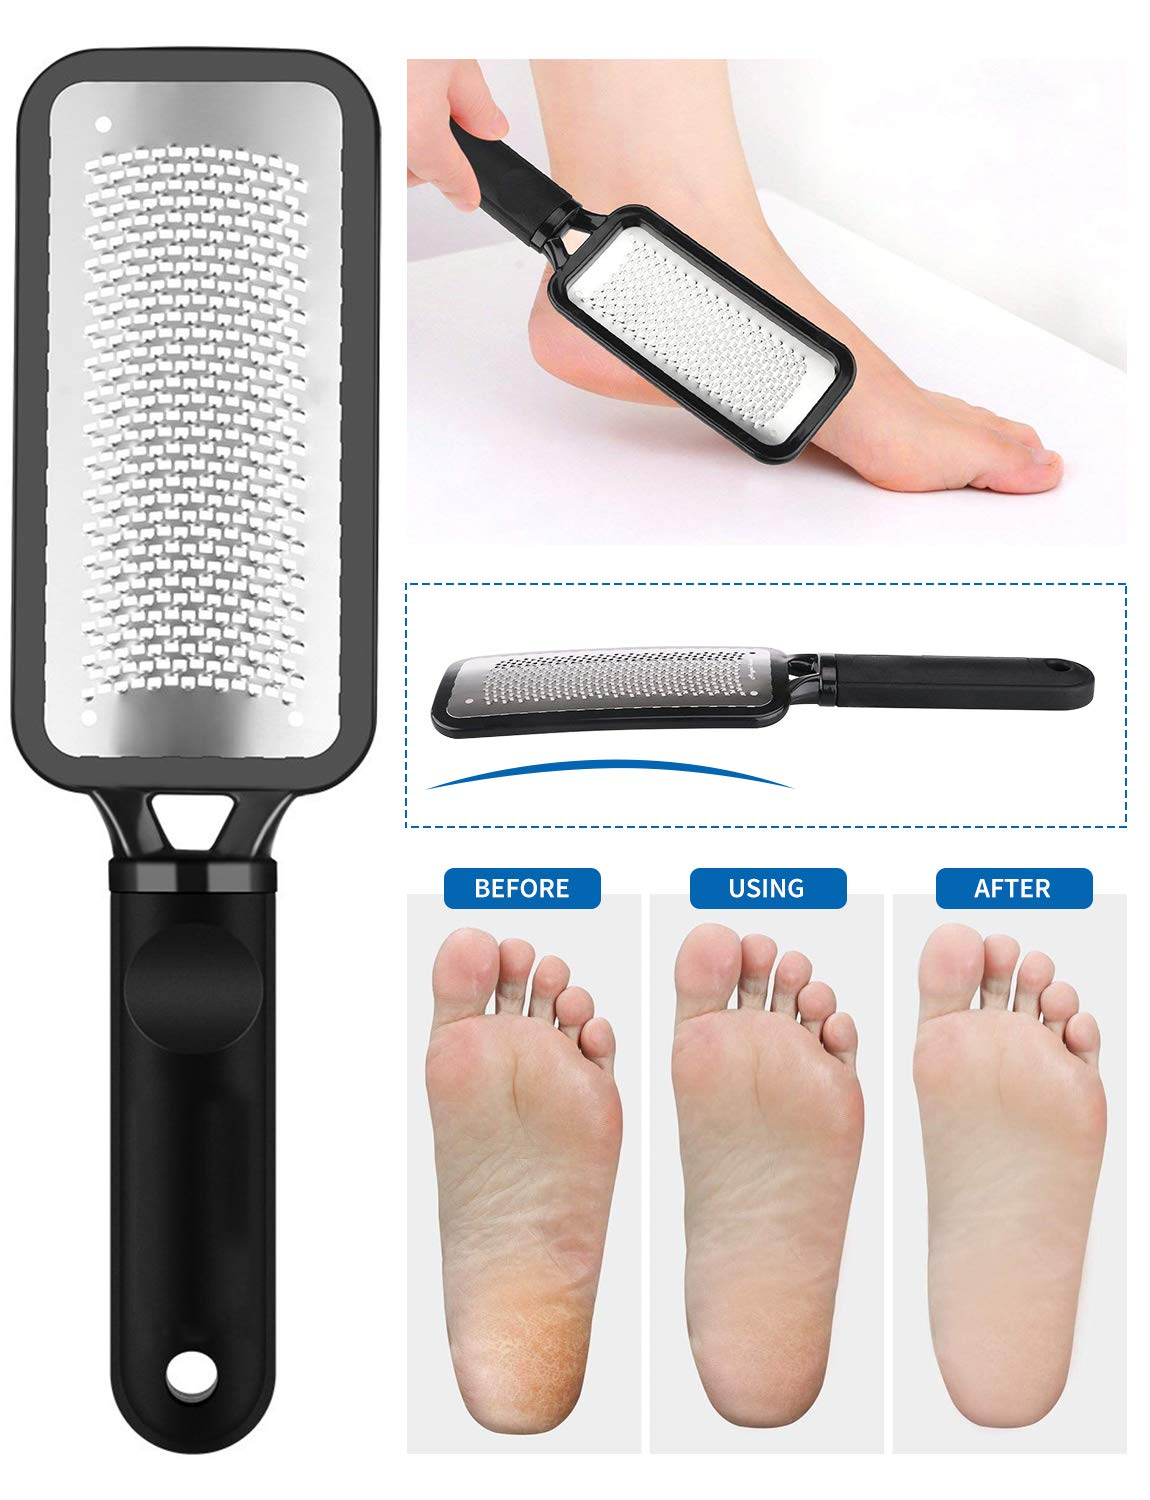 Colossal Foot Rasp Foot File and Callus Remover, 3 in 1 Foot Care Pedicure Set Tool for Hard Skin Cuticle Remover, Can be Used on Both Wet and Dry Feet, Surgical Grade Stainless Steel File: Beauty